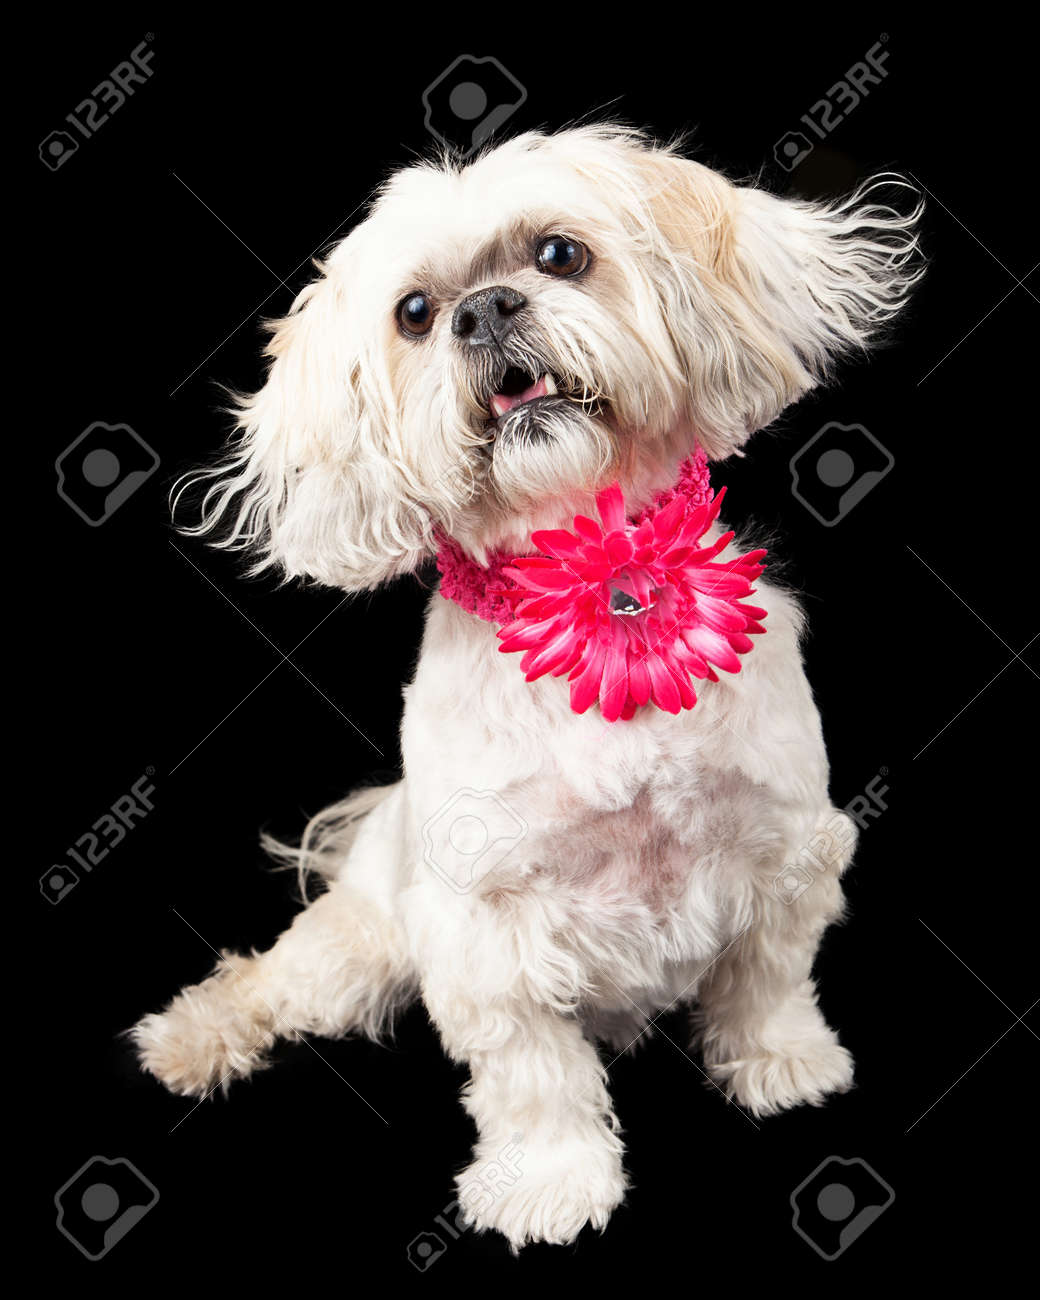 A cute female lhasa apso dog wearing a pink flower collar white a cute female lhasa apso dog wearing a pink flower collar white sitting against a black dhlflorist Choice Image